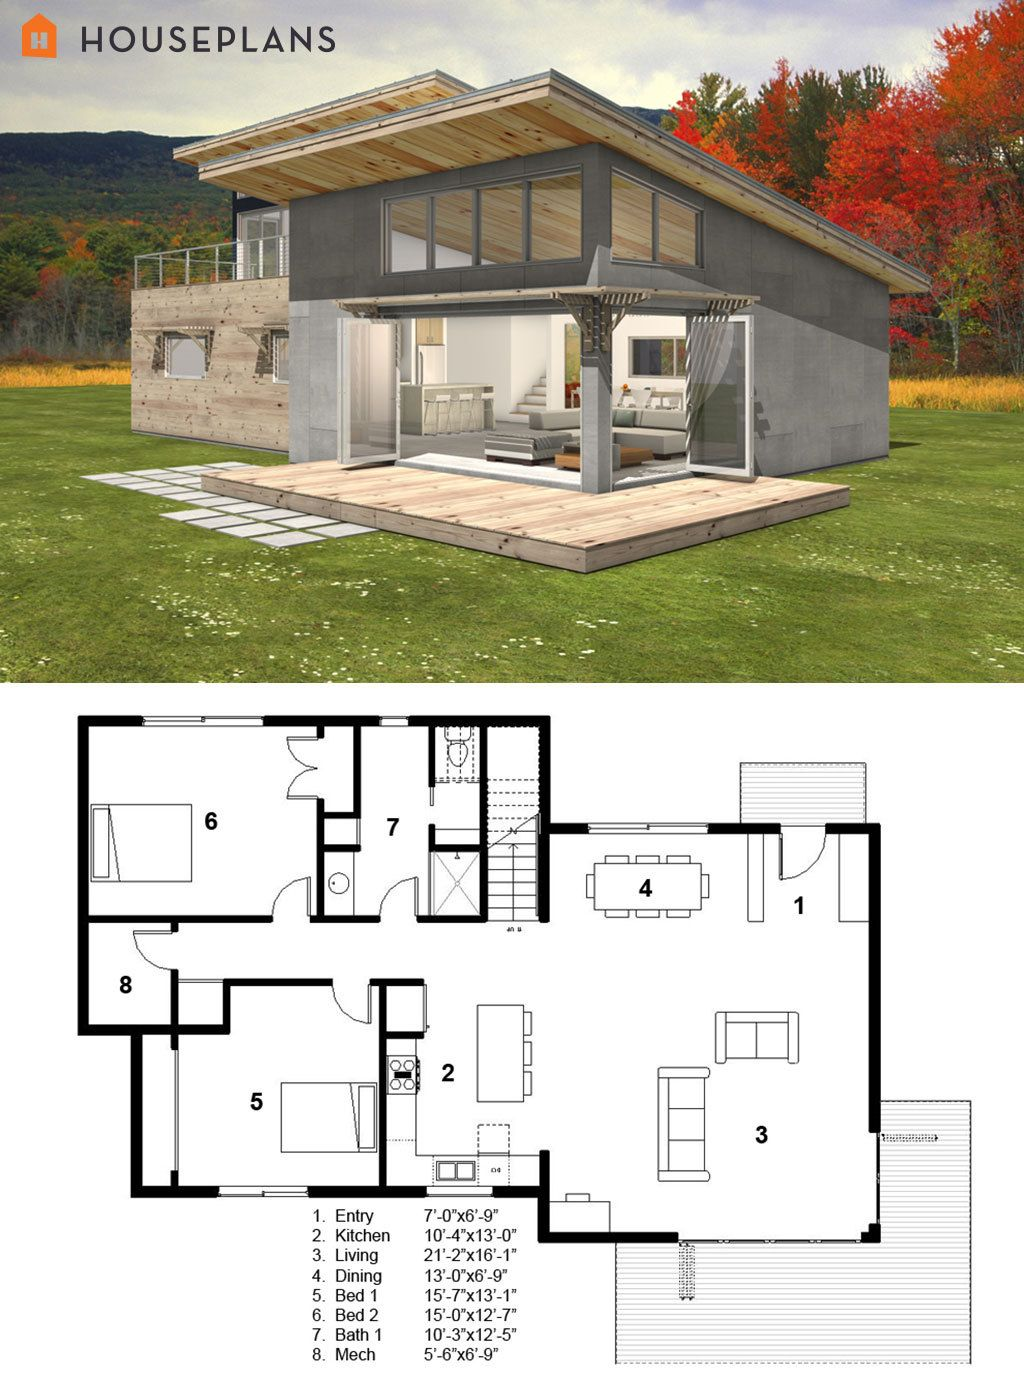 Modern style house plan 3 beds baths 2115 sq ft for Modern house designs usa